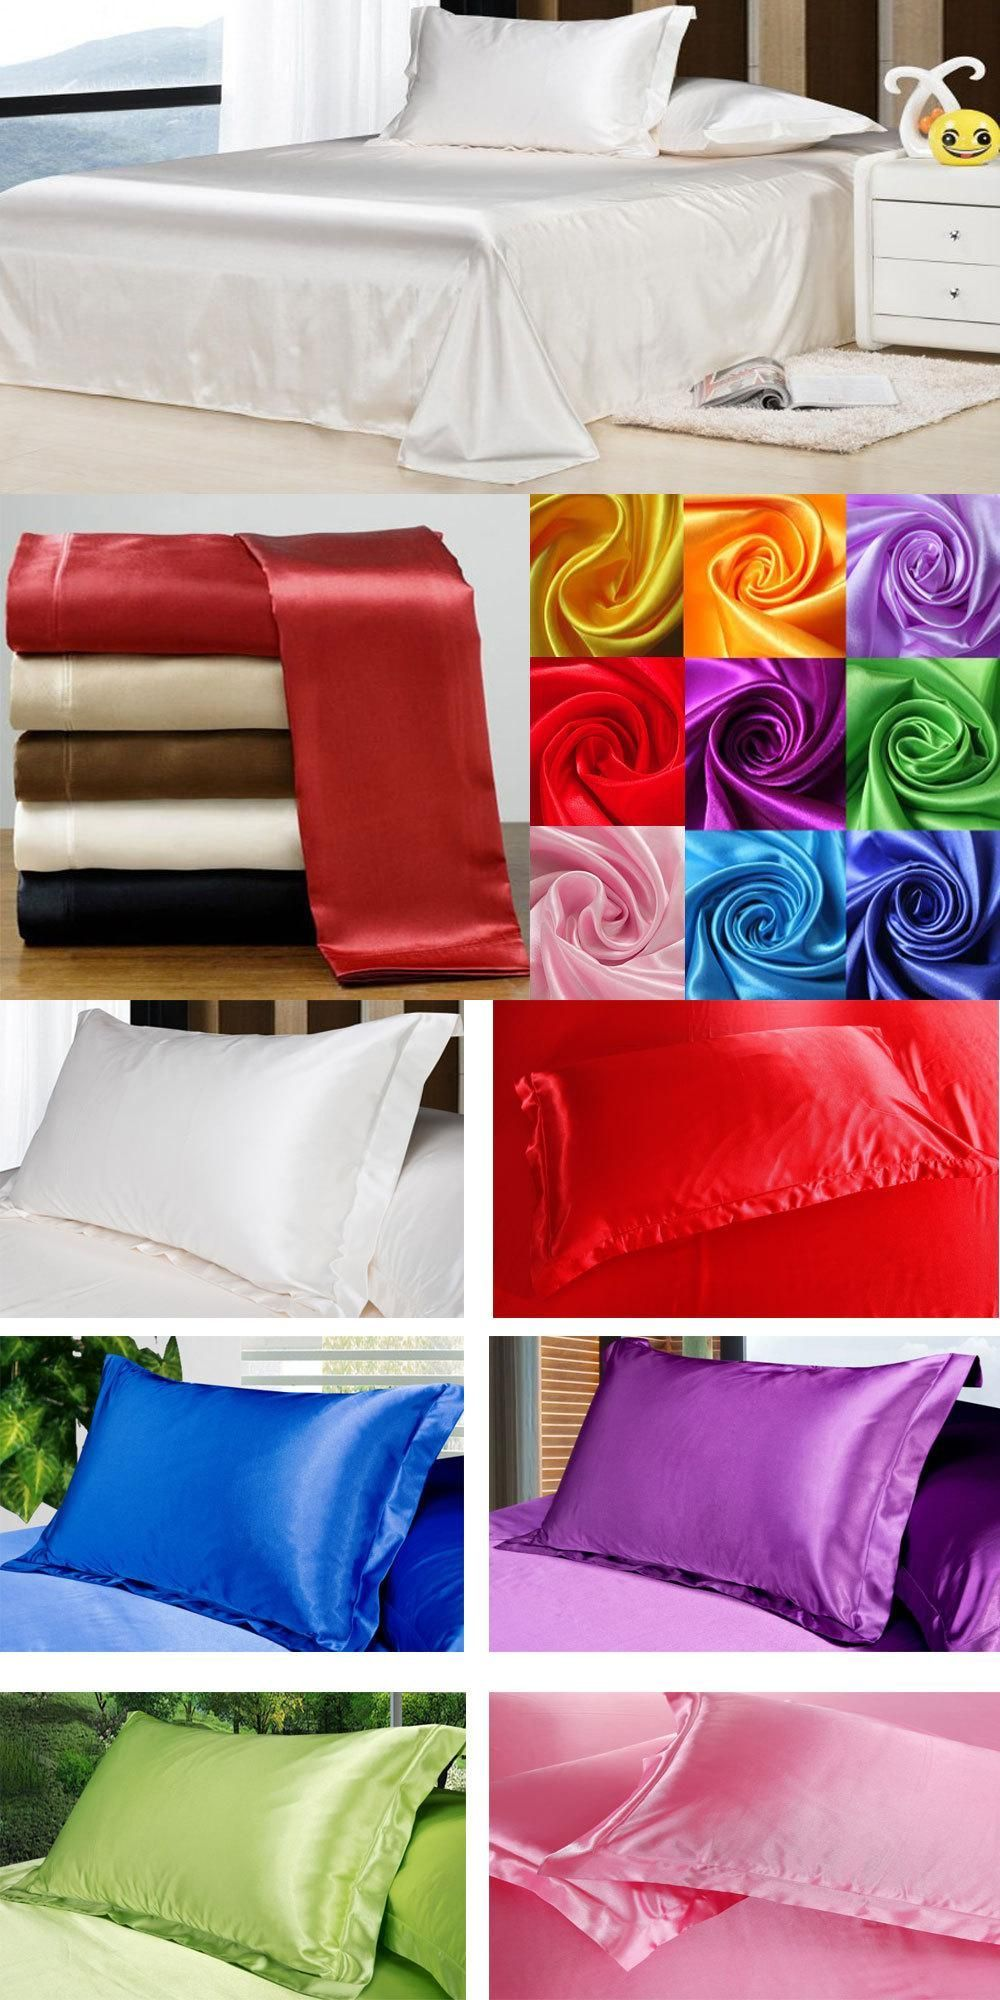 Silk Vs Satin Pillowcase Entrancing Wholesale100% Soft Skin Satin Silk Bed Sheet Pillowcases Wedding Inspiration